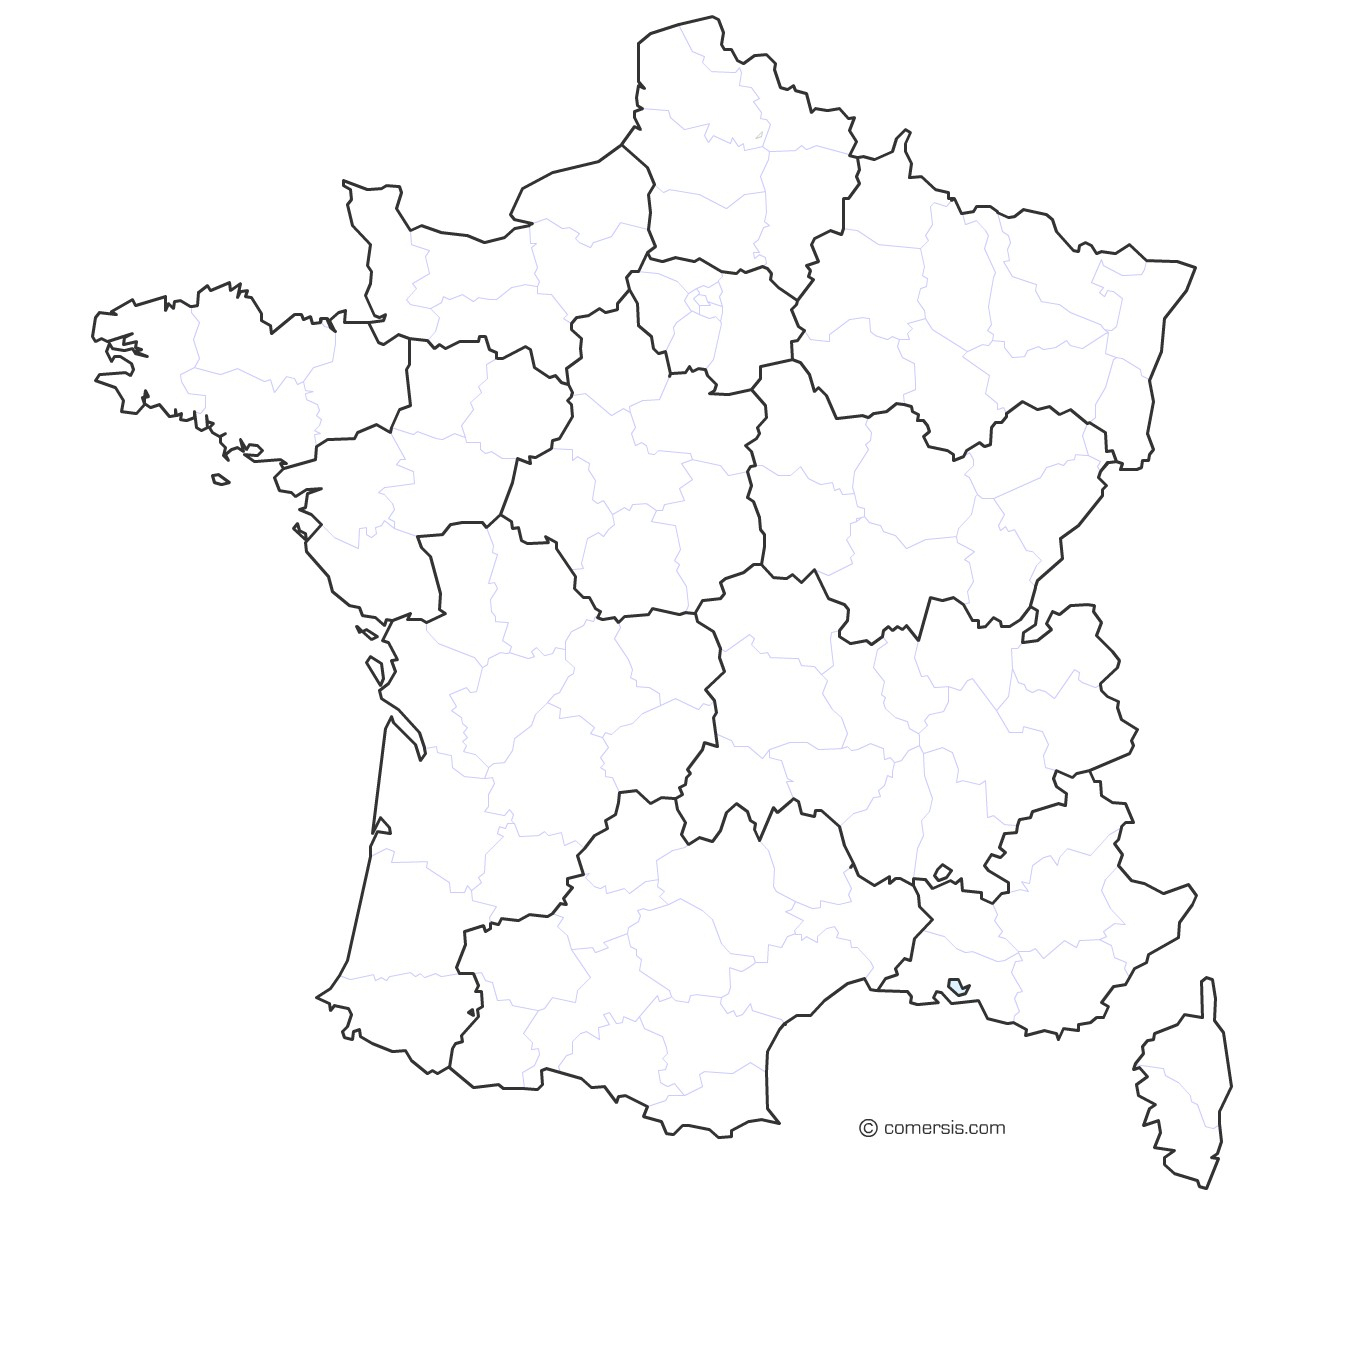 204E Carte France Region | Wiring Library serapportantà Carte De La France Région